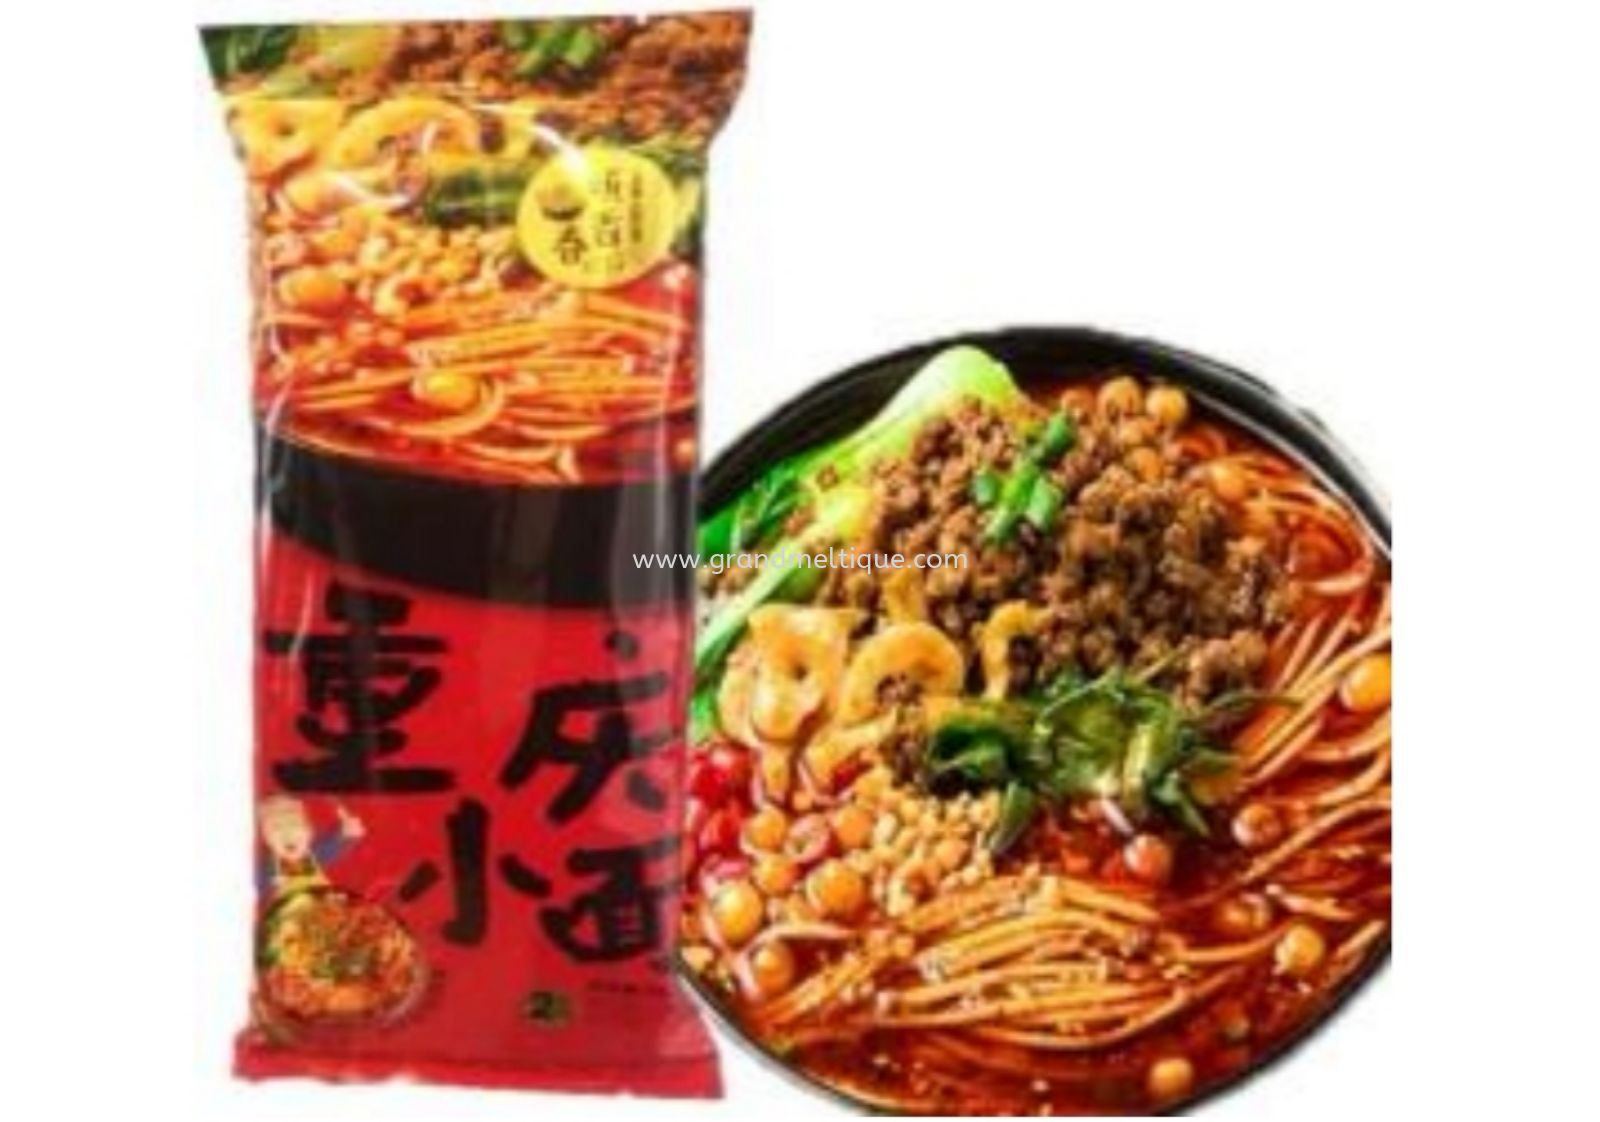 SHUN SAVORY CHONGQING SPICY NOODLE顺香春重庆小面